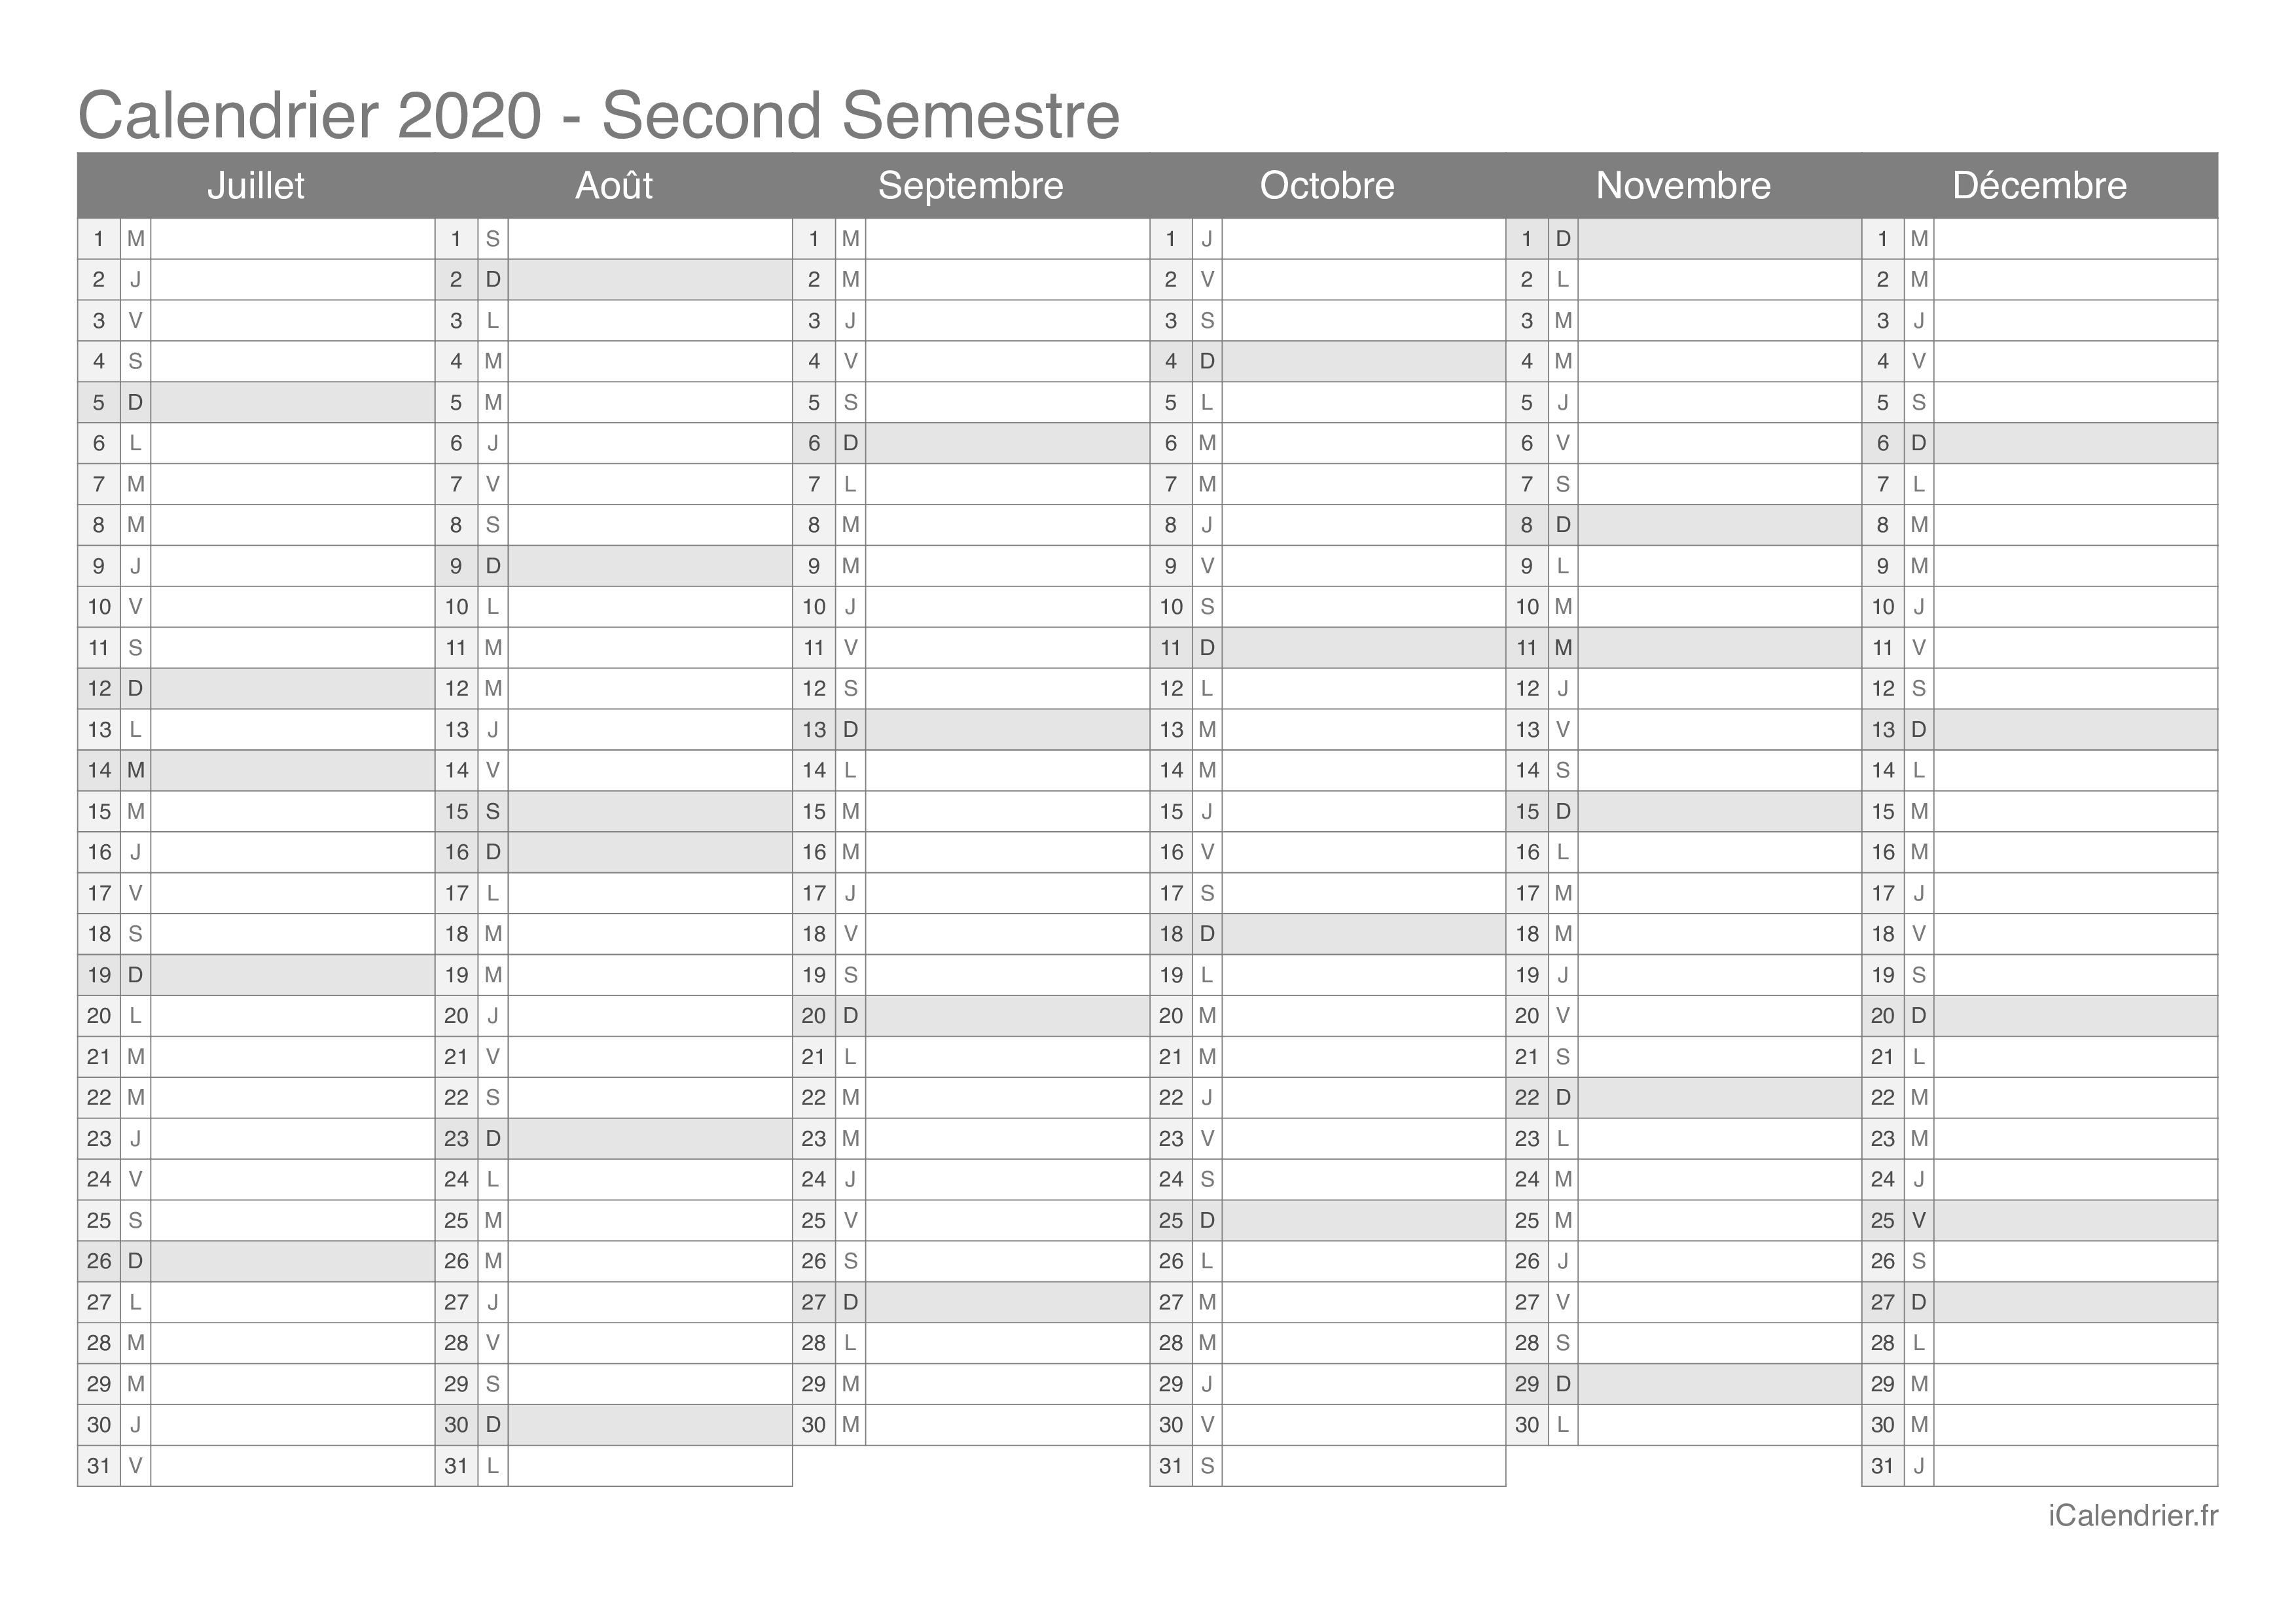 Semaines Calendrier 2020.Calendrier 2020 A Imprimer Pdf Et Excel Icalendrier